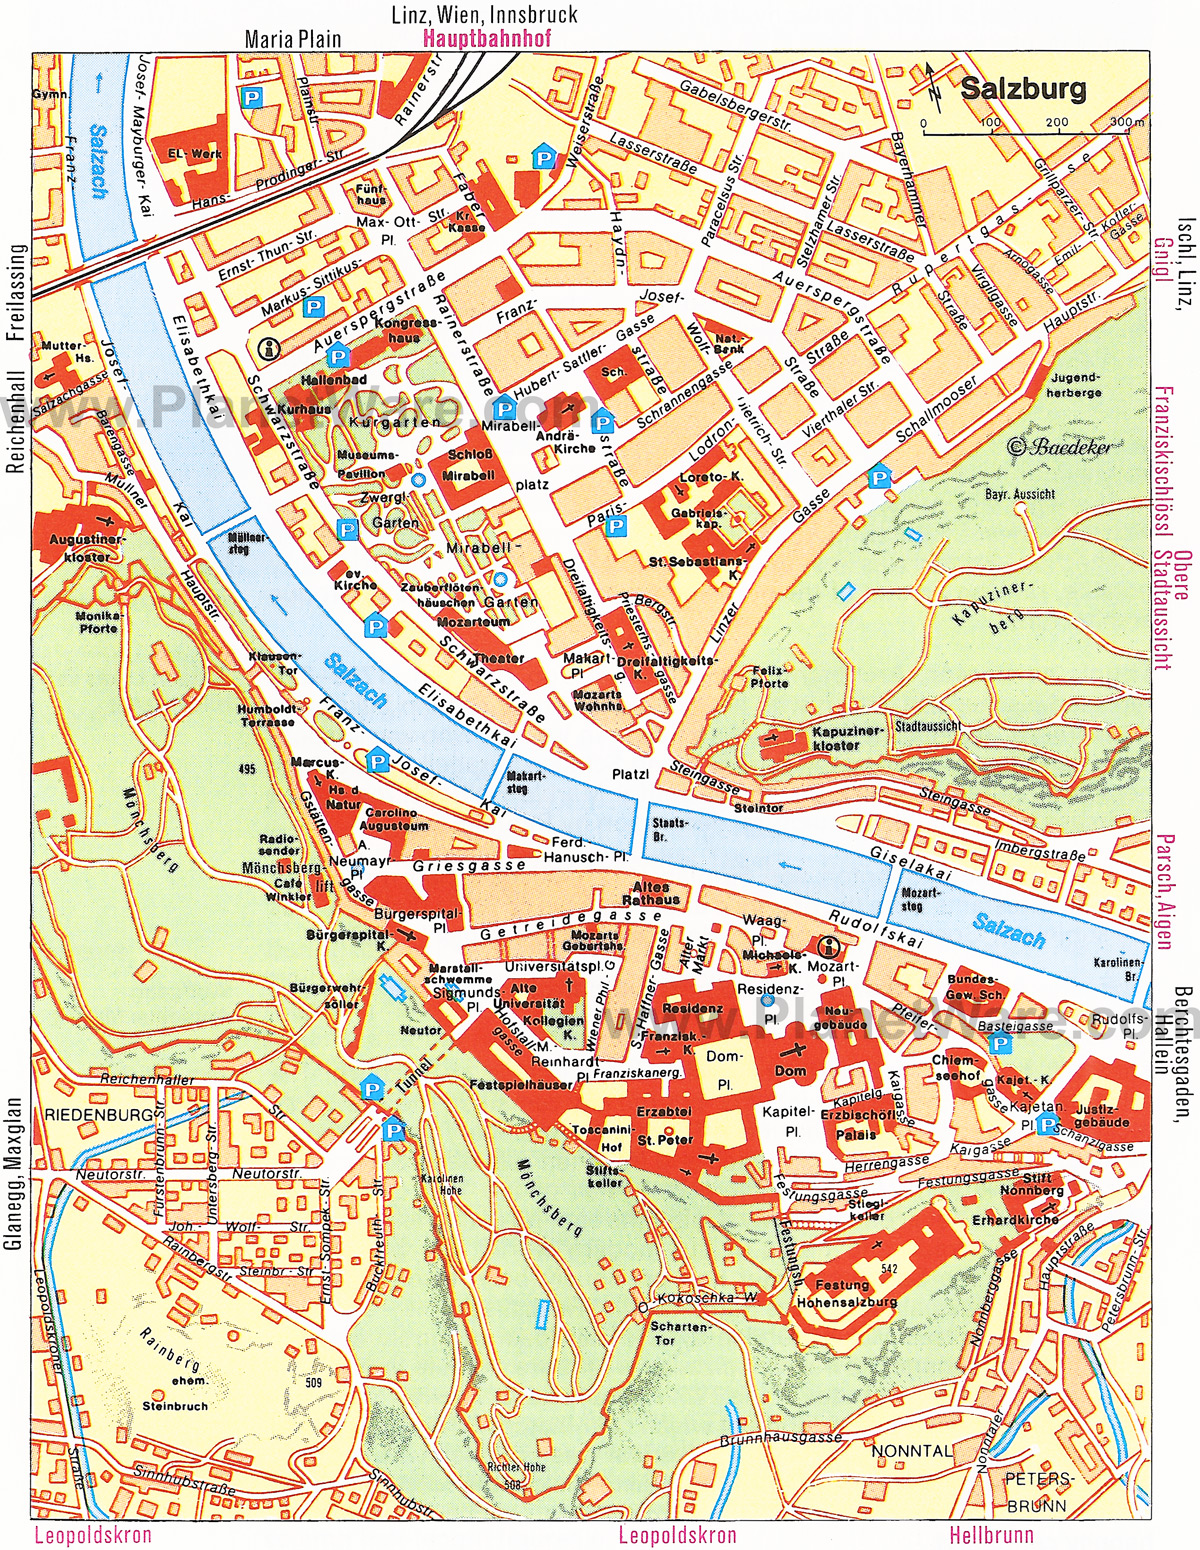 salzburg térkép Salzburg Map   Detailed City and Metro Maps of Salzburg for  salzburg térkép